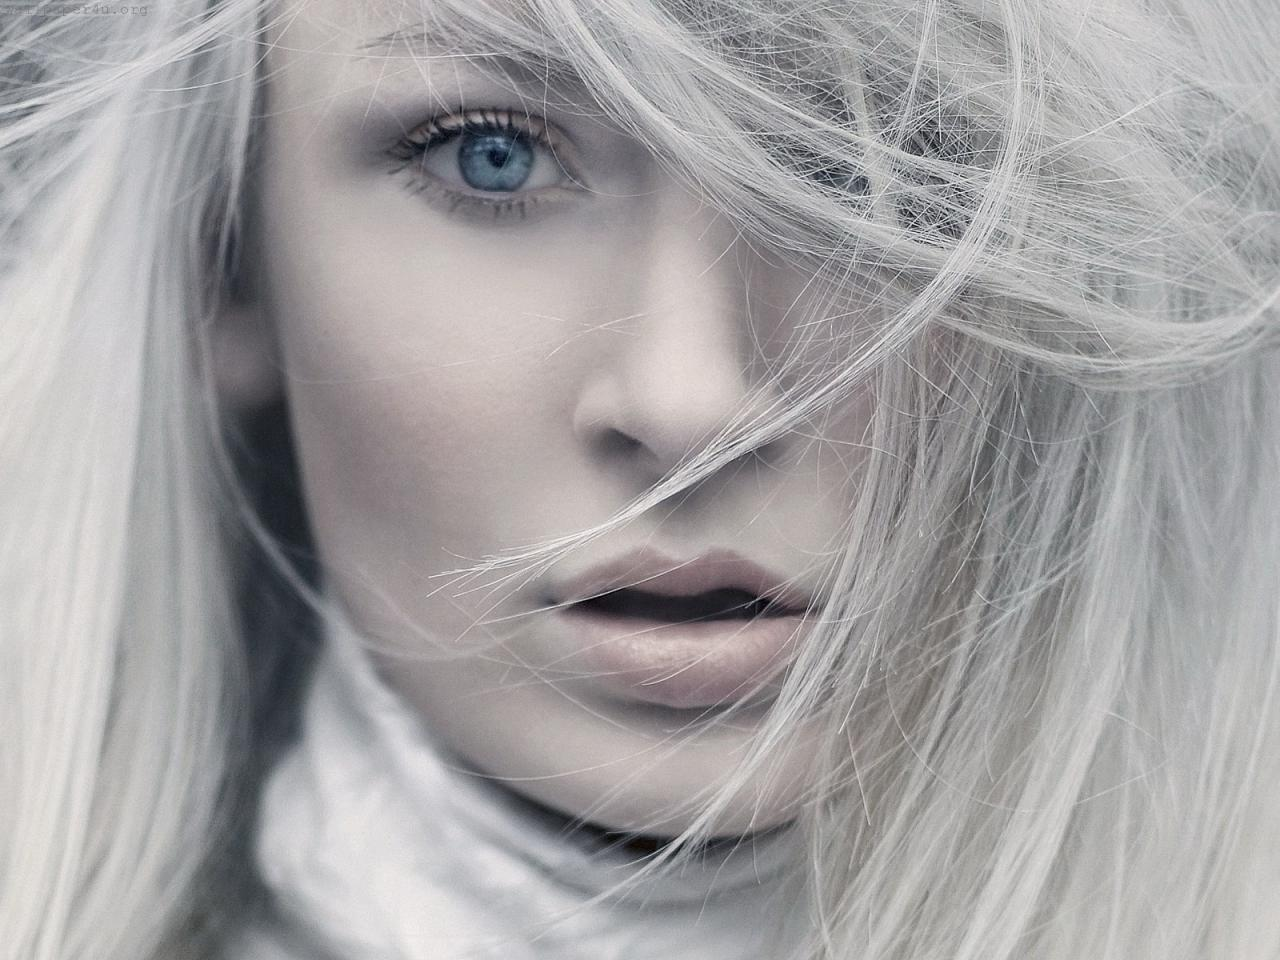 blue-eyes-white-hair-model-960x1280